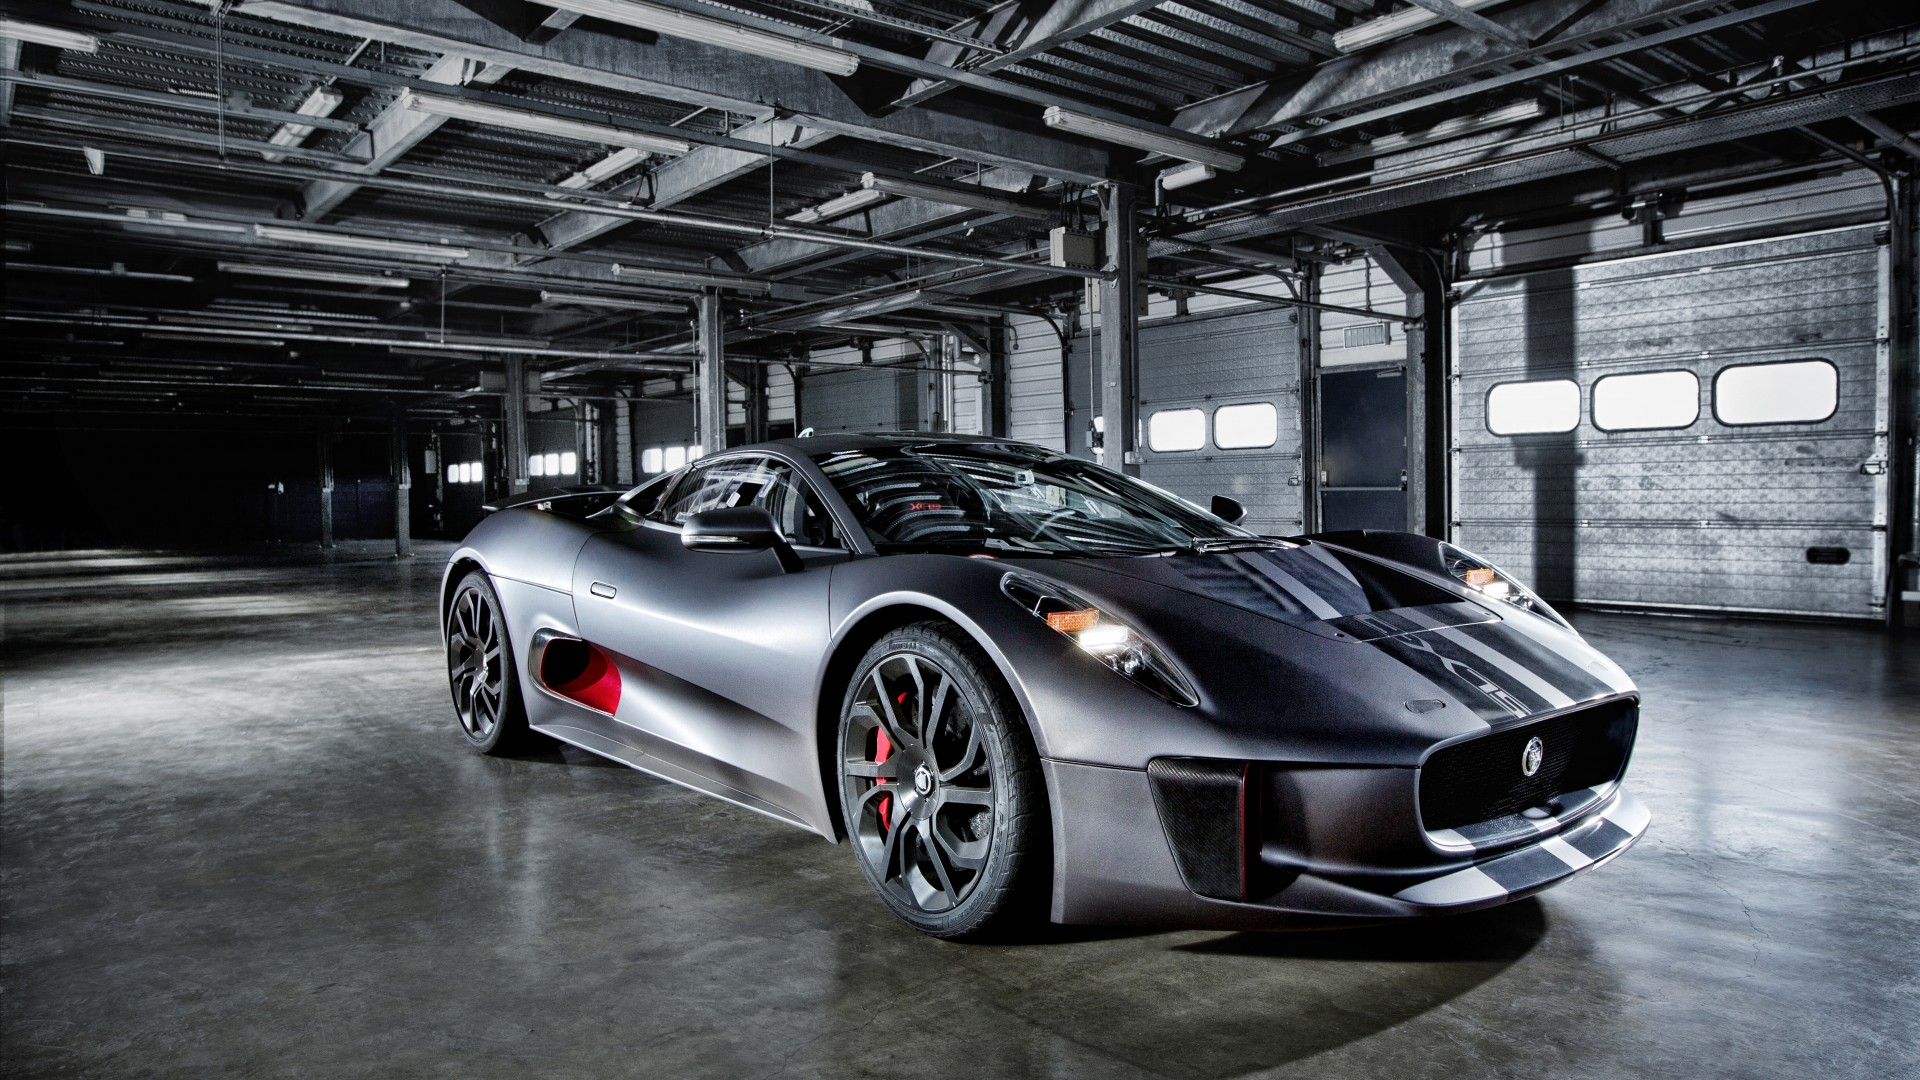 Jaguar C-X75, electric car, hybrid, supercar, sports car, review, test drive, speed, side (horizontal)